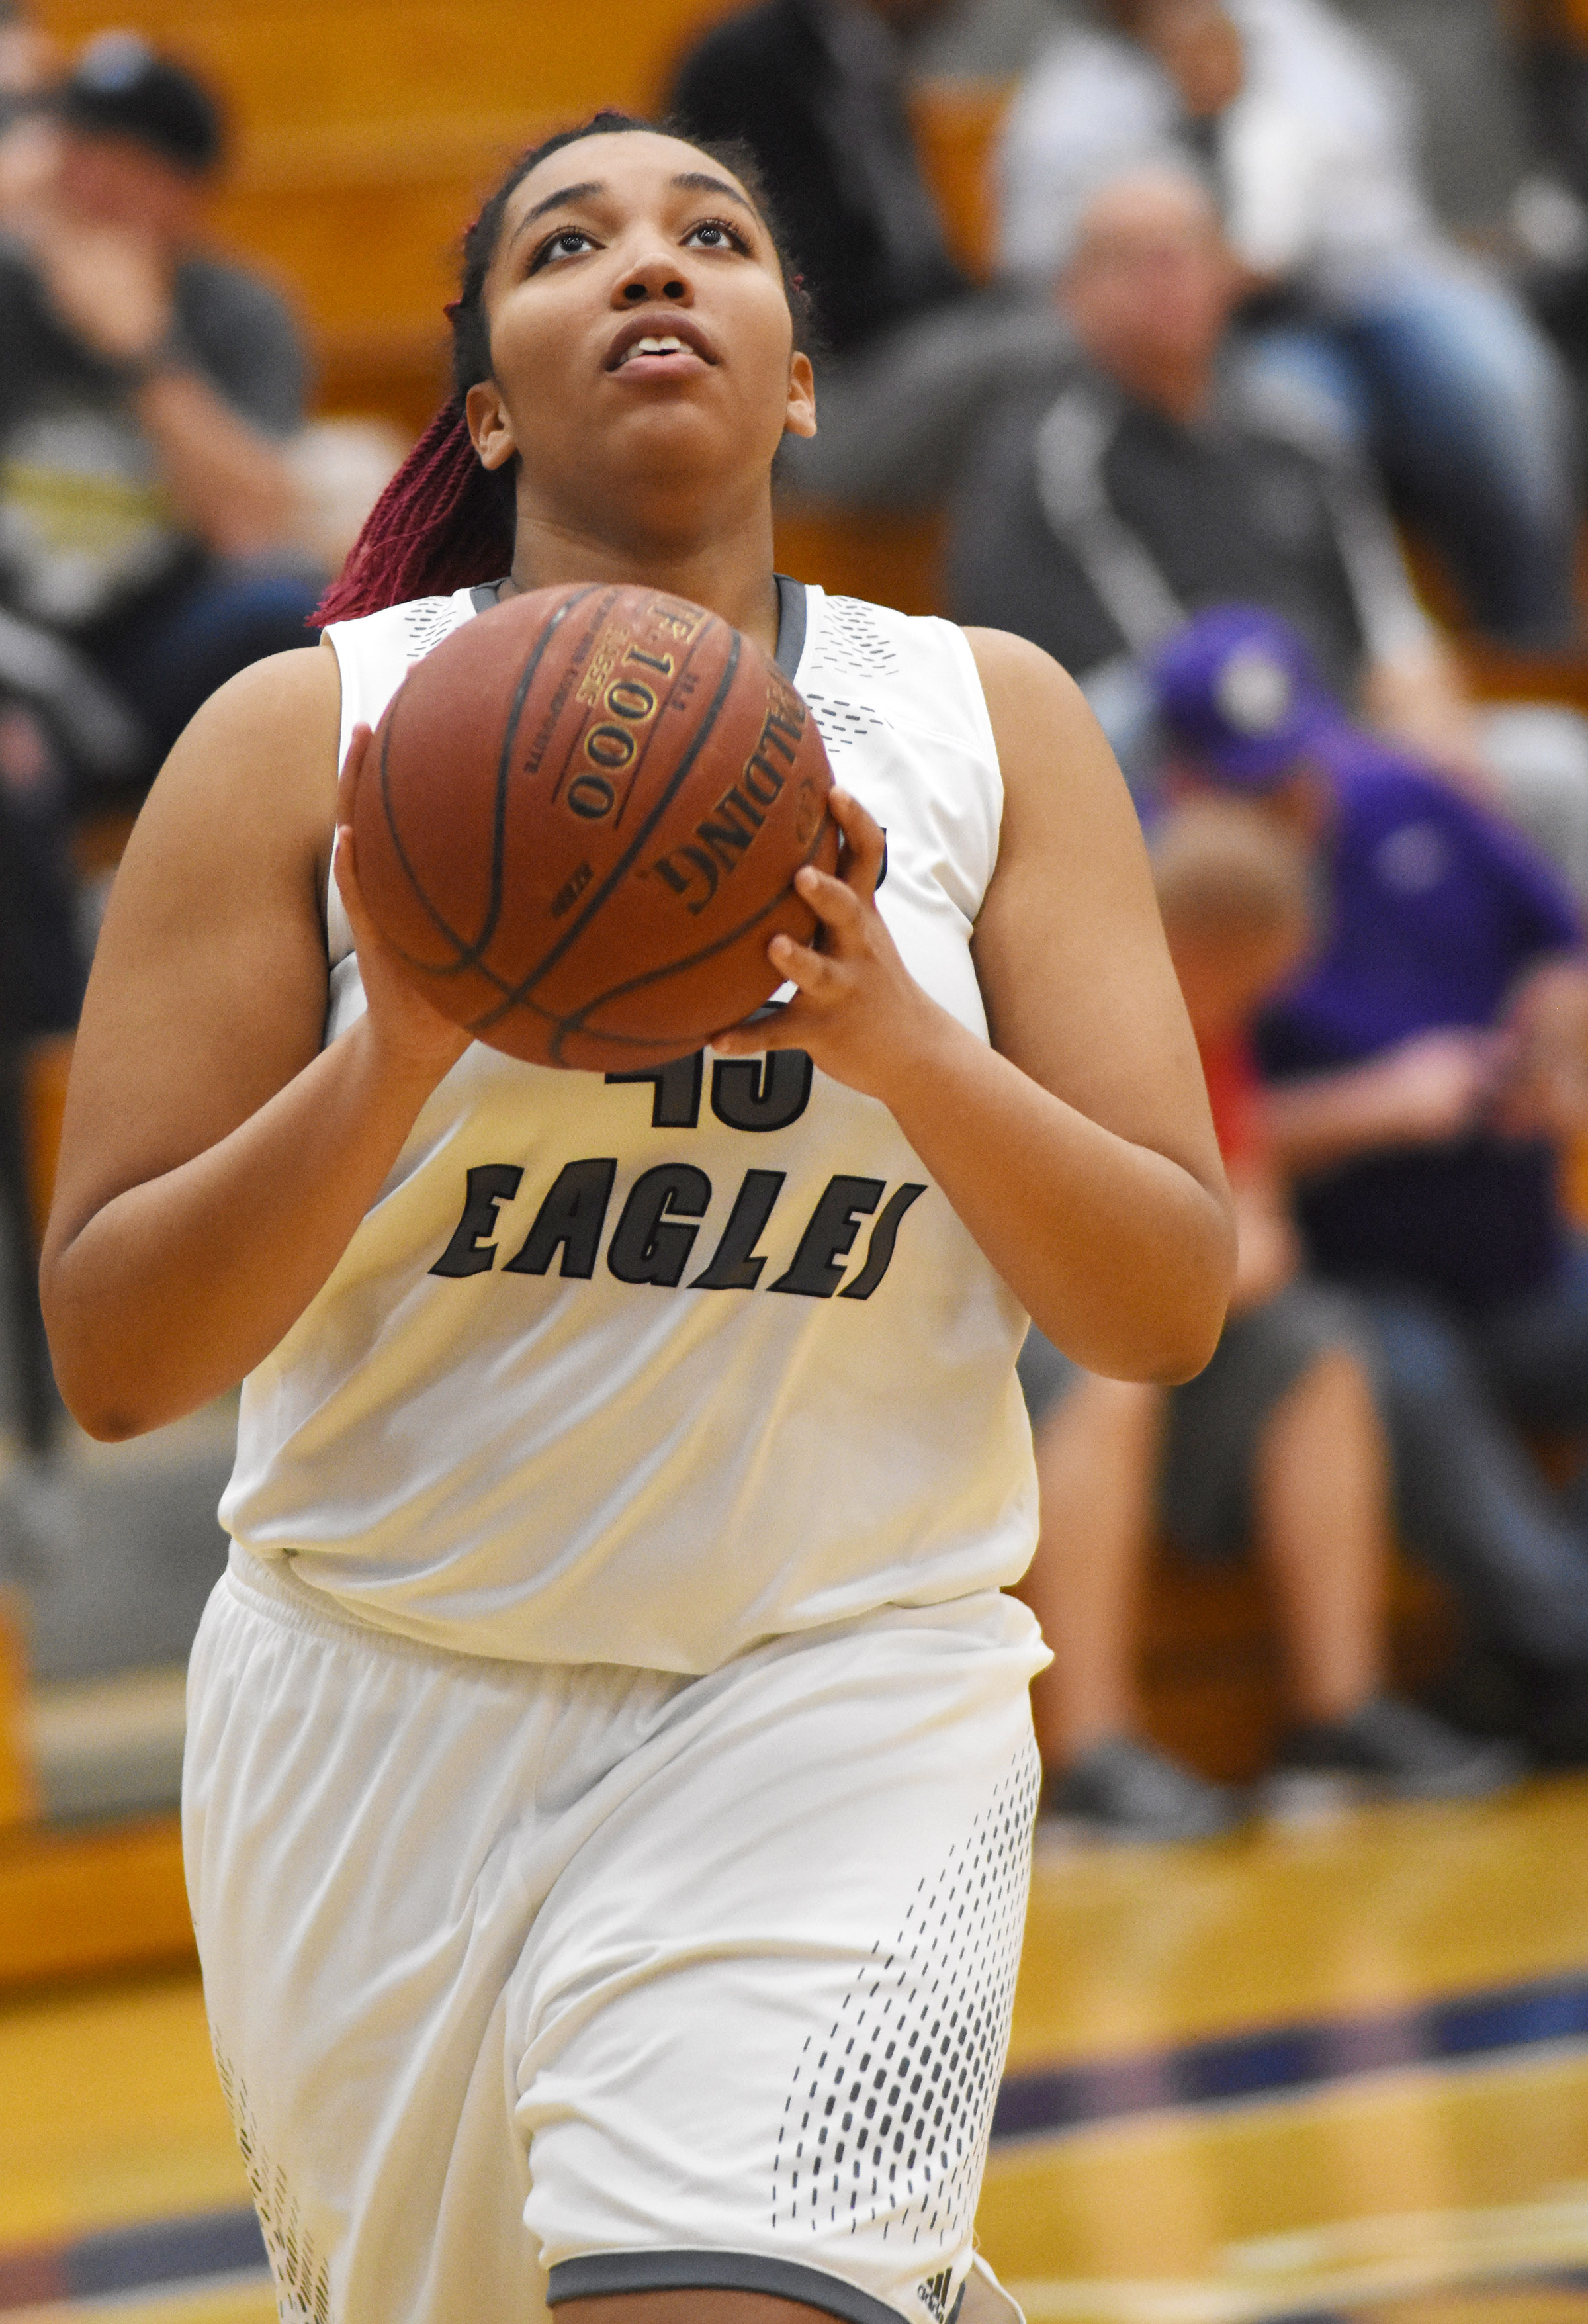 CHS junior Malaya Hoskins shoots the ball.